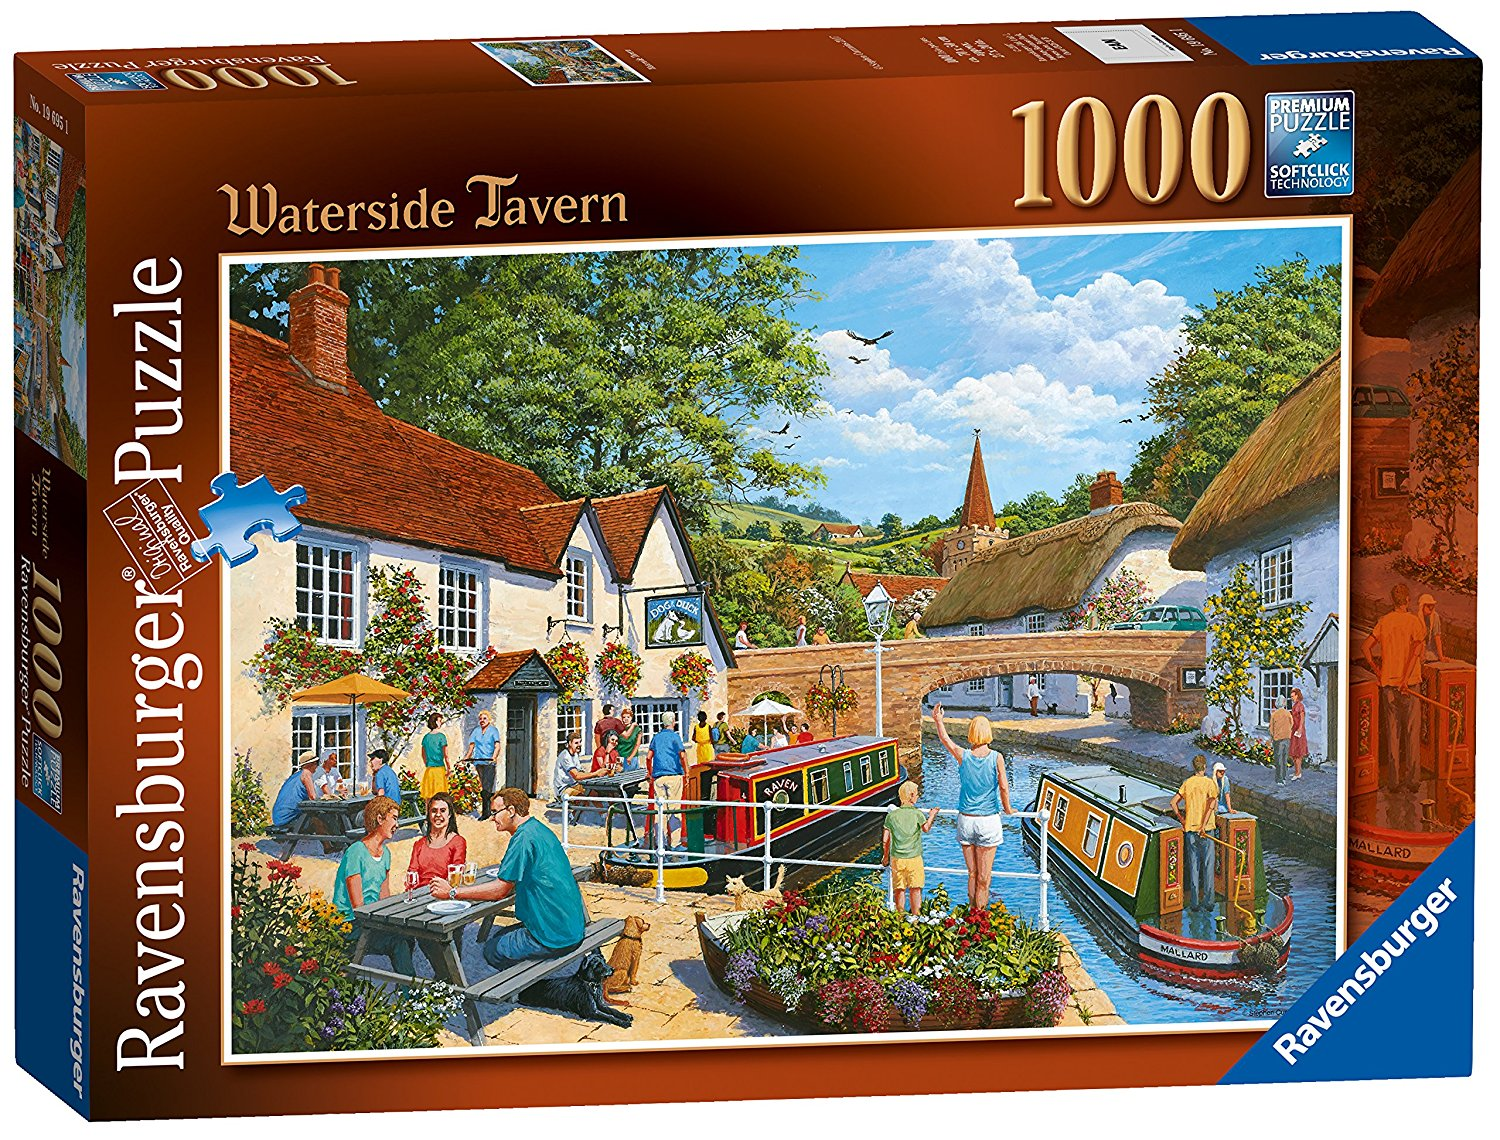 Waterside Tavern, 1000pc